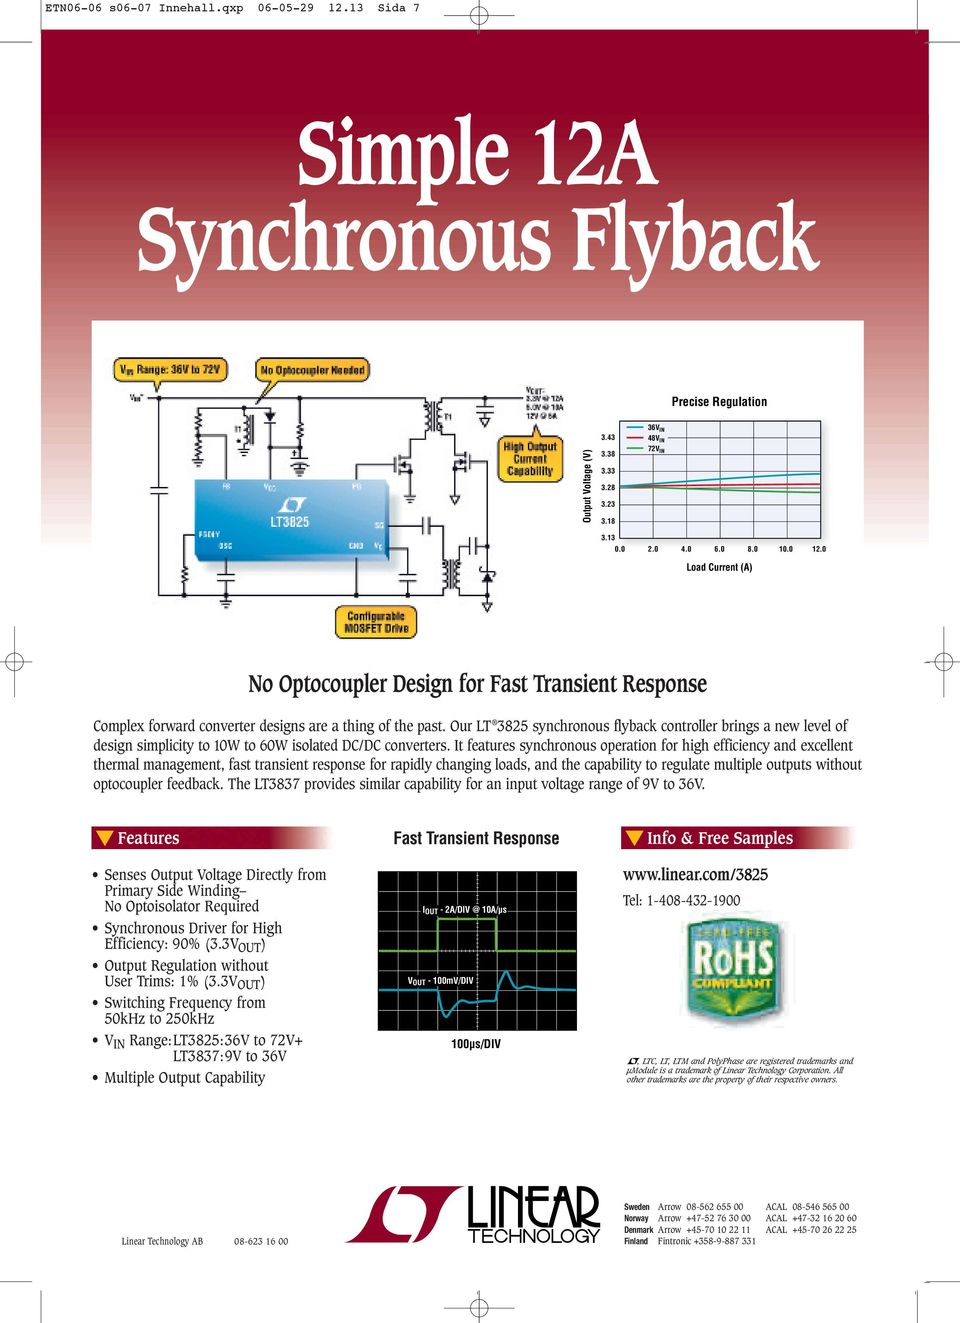 Our LT 3825 synchronous flyback controller brings a new level of design simplicity to 10W to 60W isolated DC/DC converters.